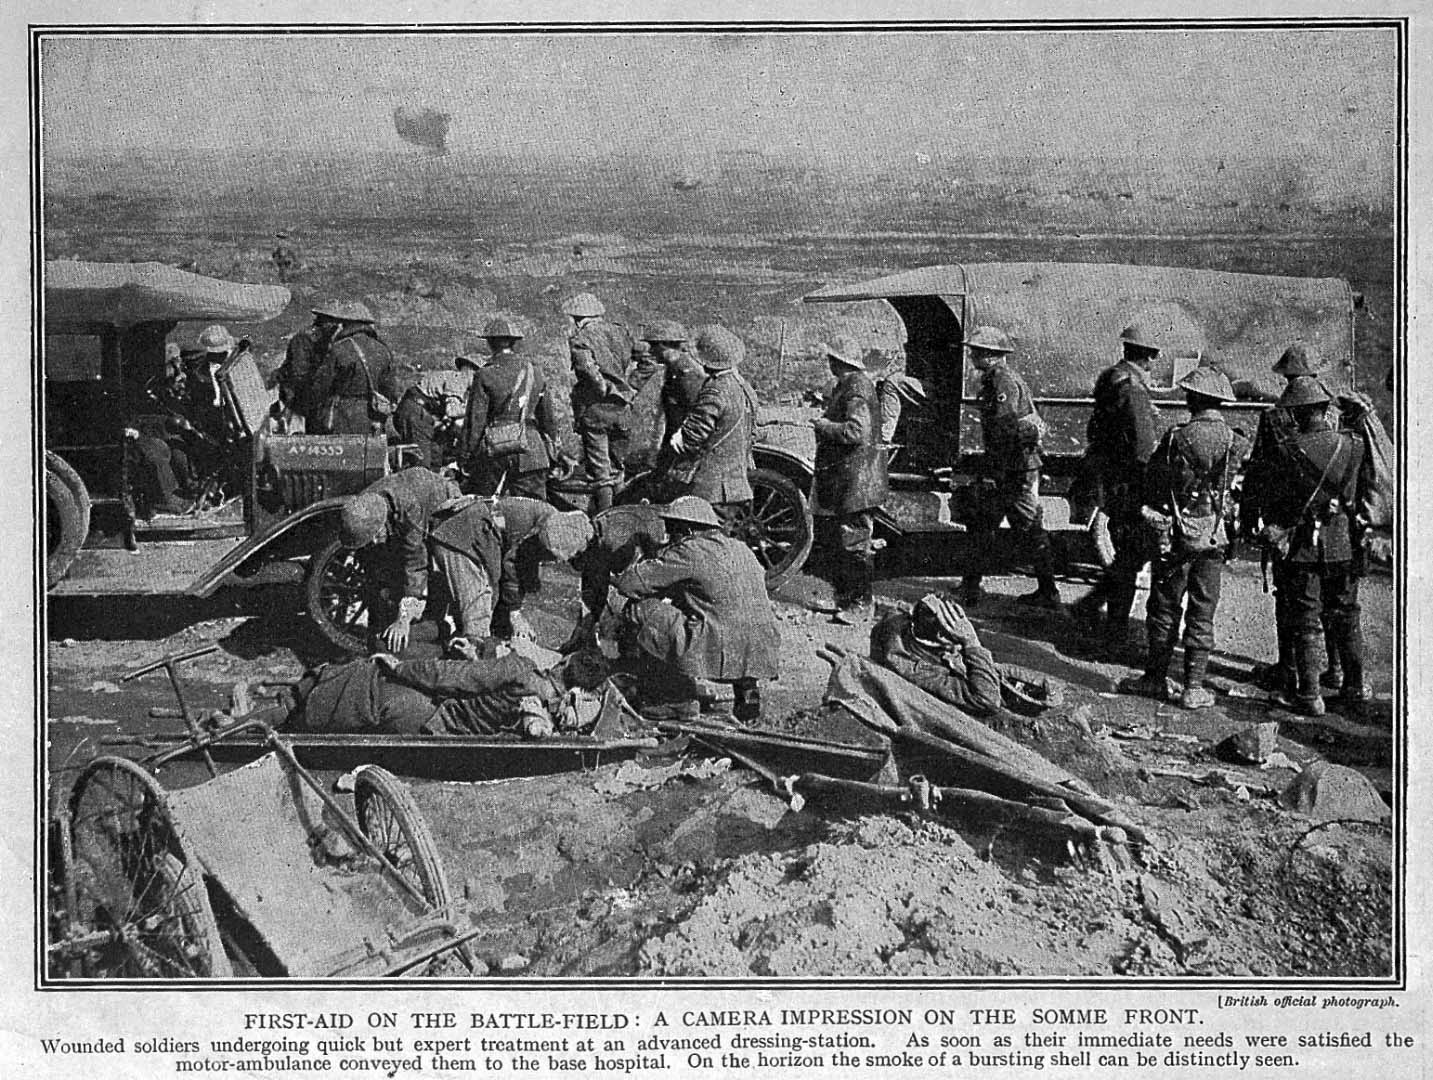 First-aid on the battle field: a photograph from the Somme front during the First World War